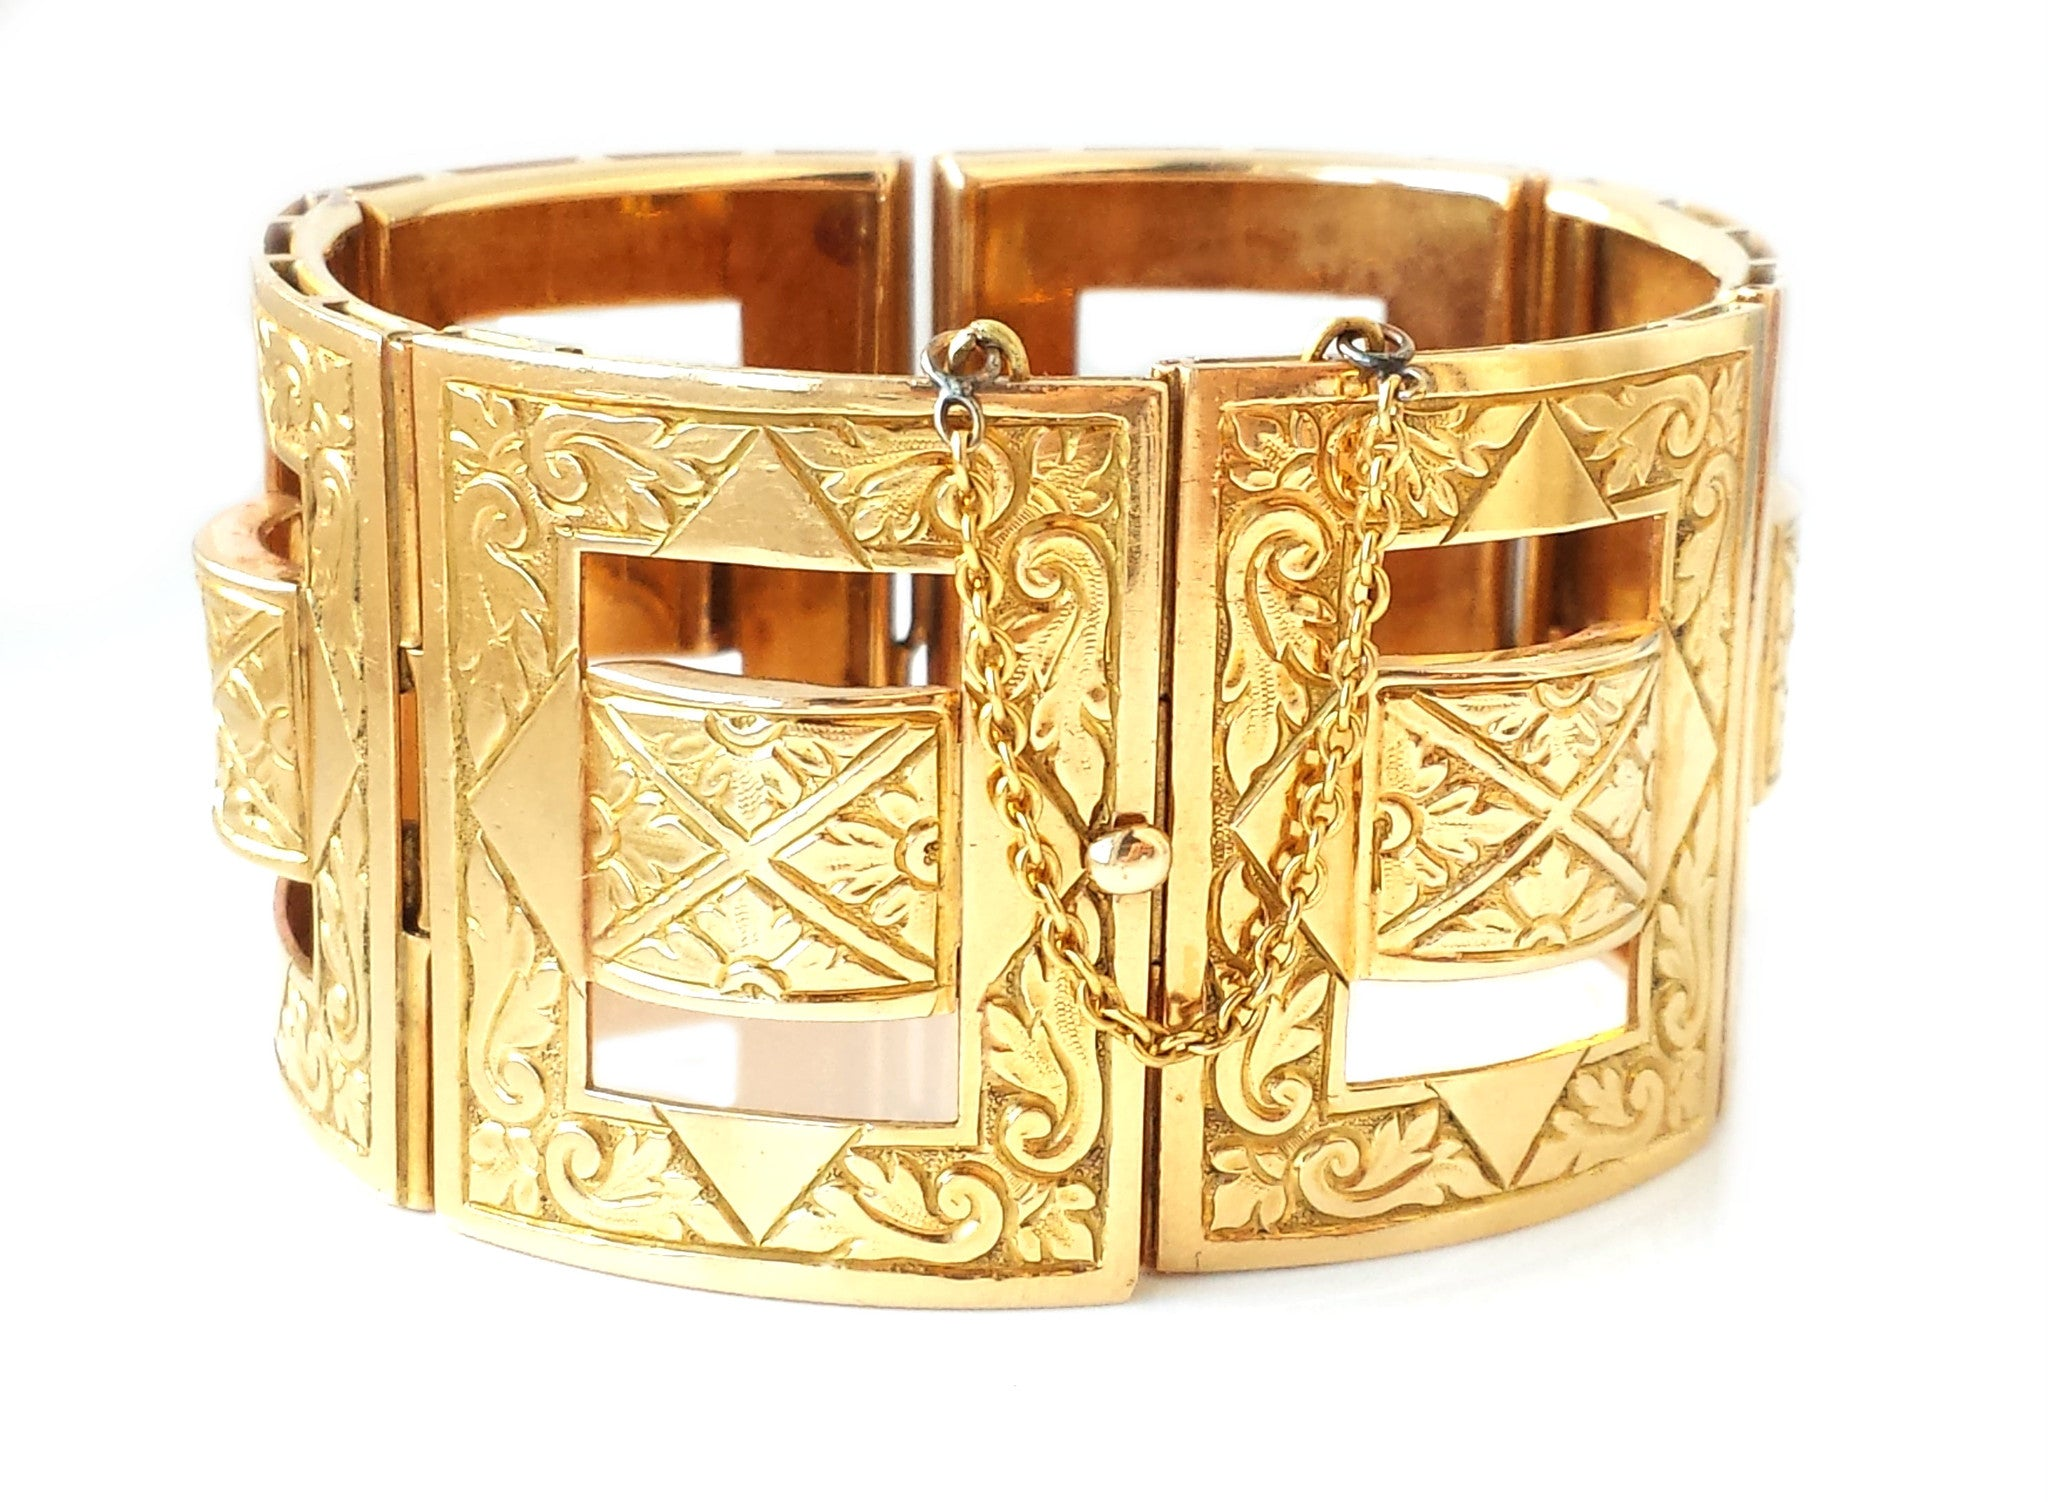 Heavy 98g Engraved 18k Yellow Gold Bangle Bracelet Cuff